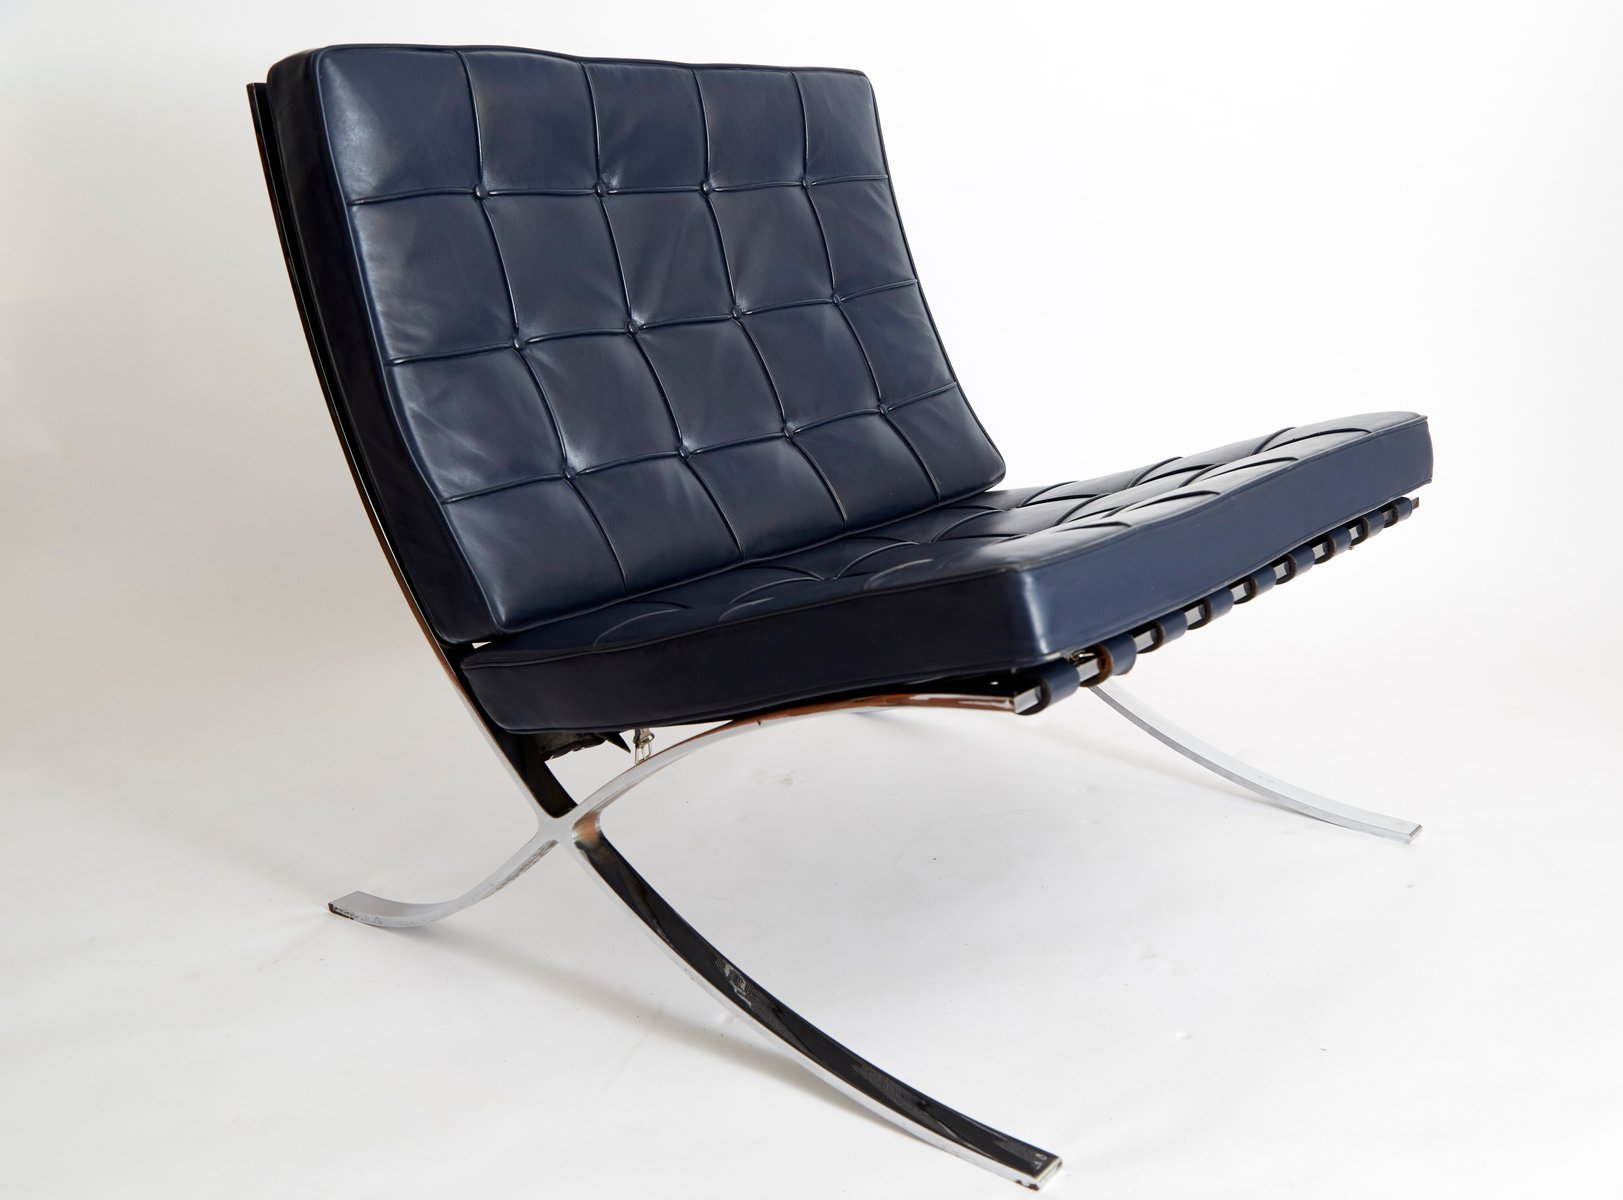 vintage mr90 barcelona chair by ludwig mies van der rohe. Black Bedroom Furniture Sets. Home Design Ideas